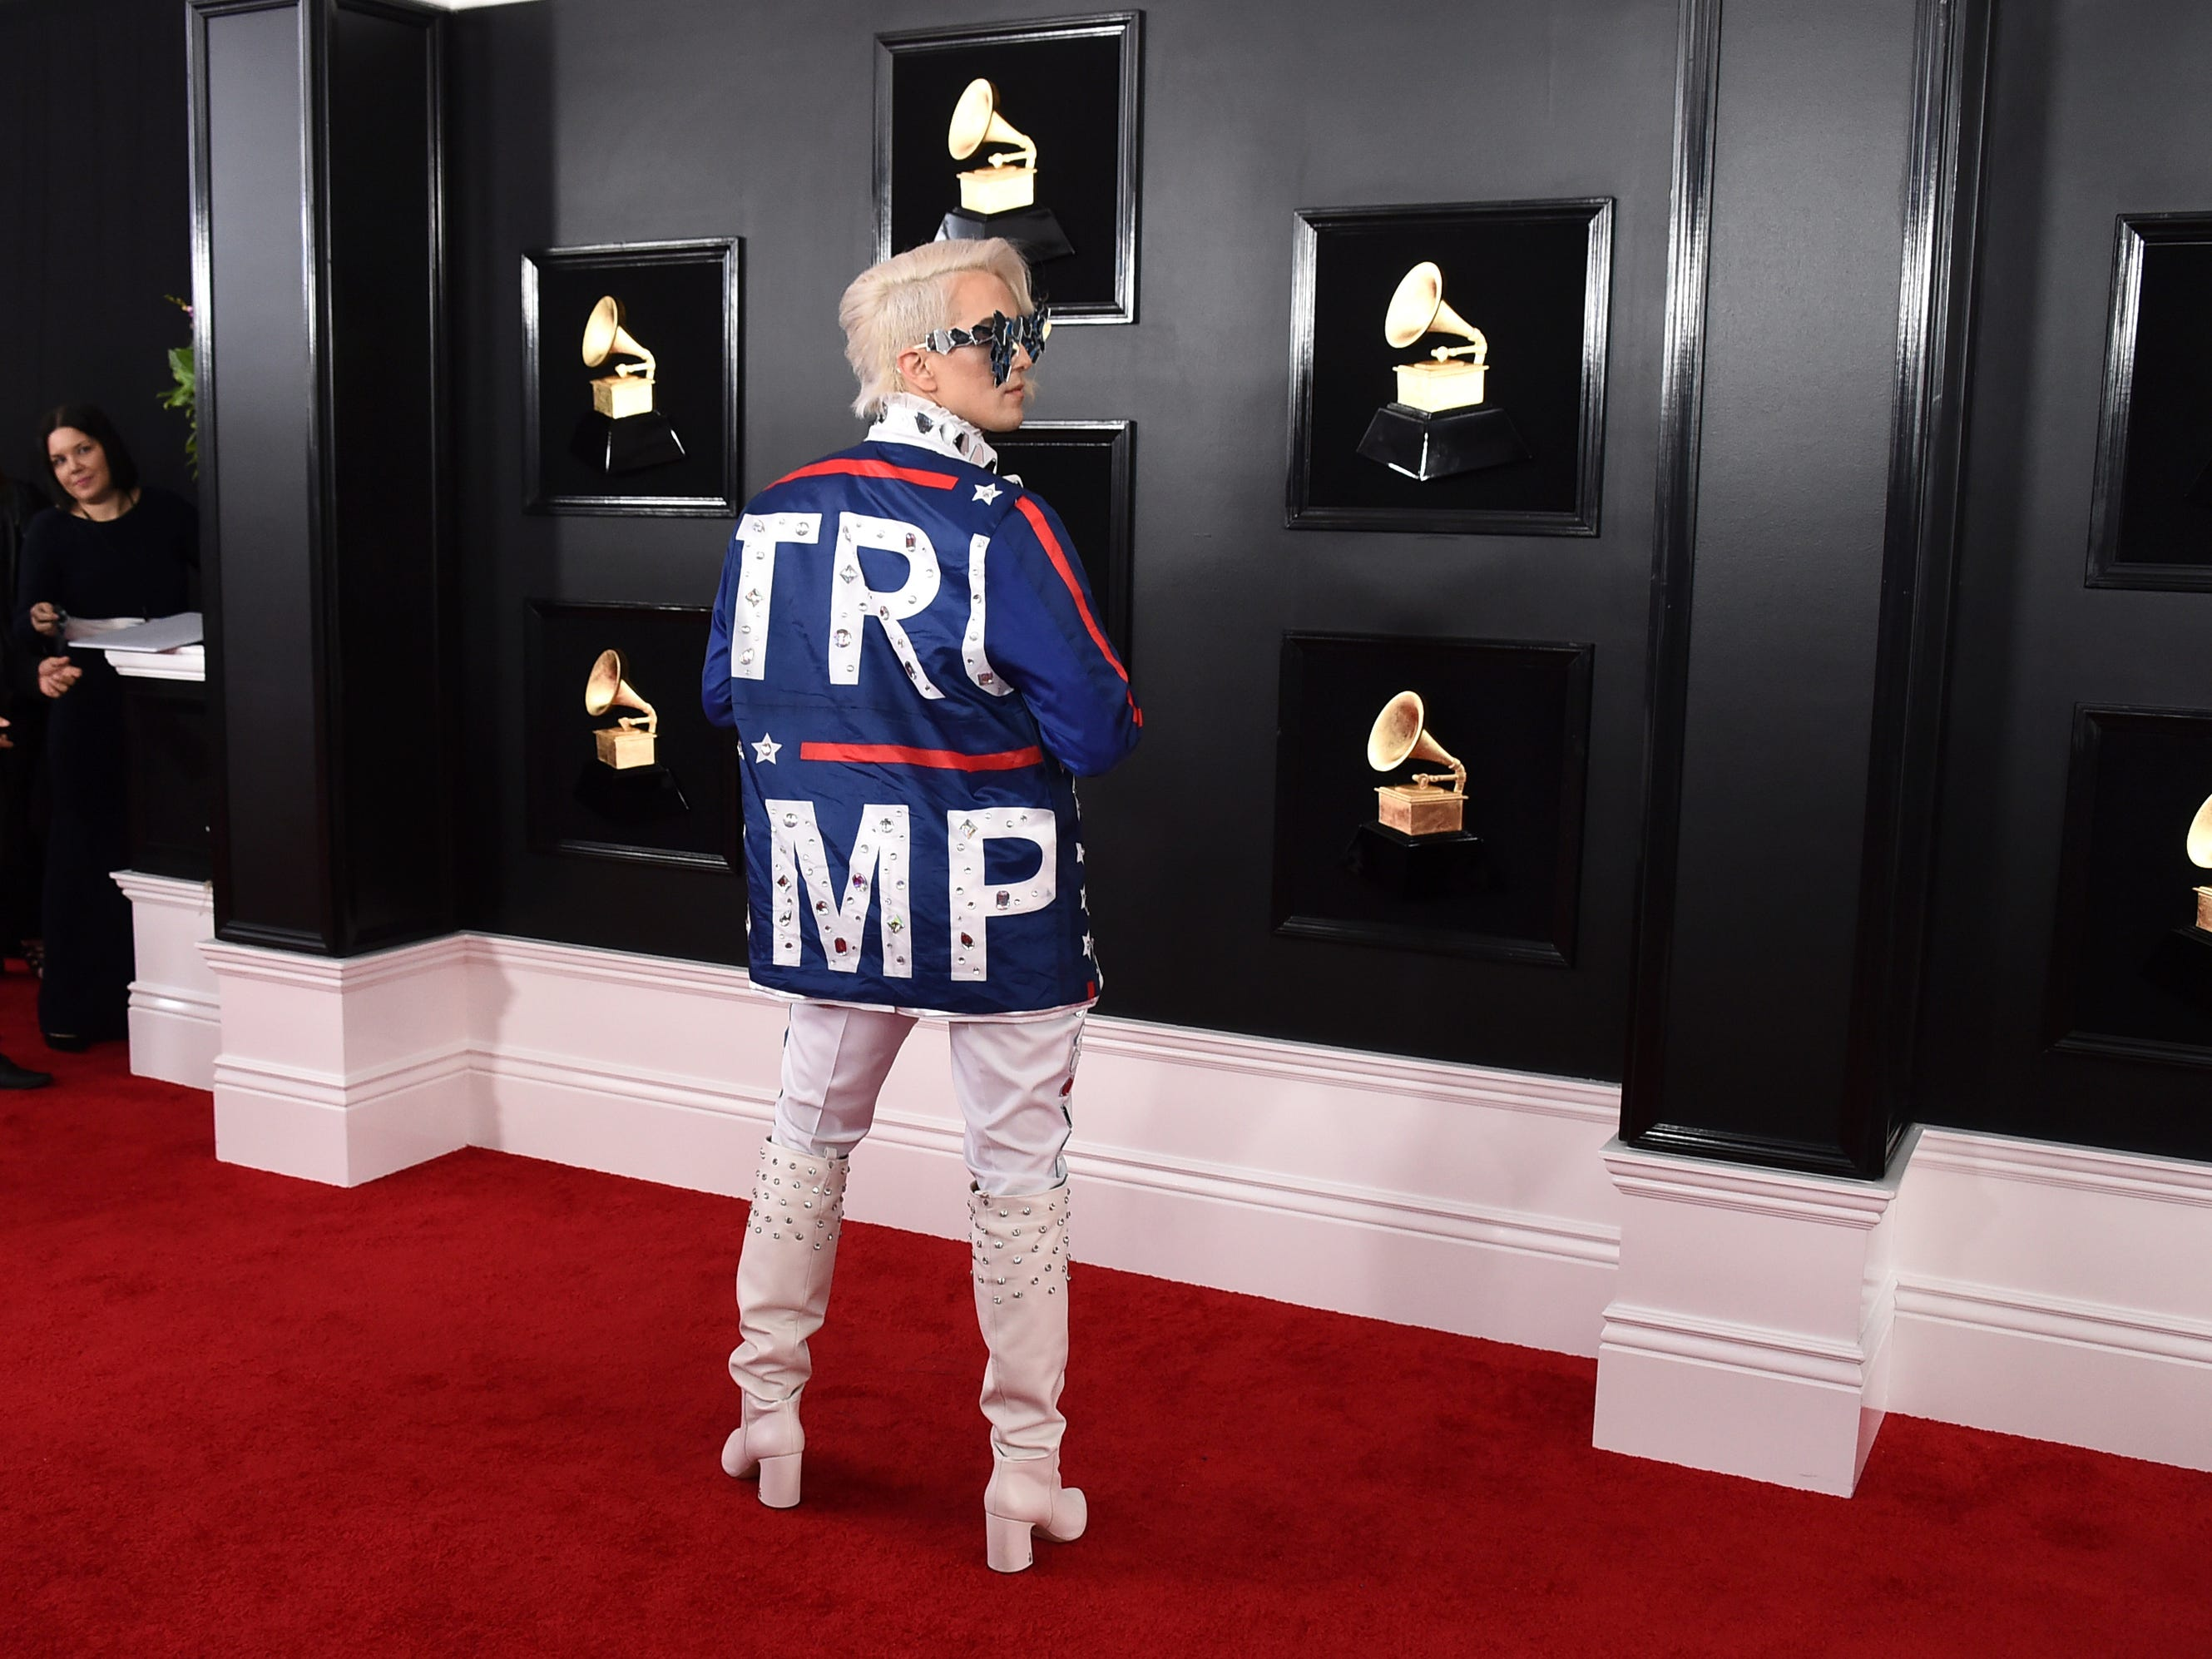 Ricky Rebel arrives at the 61st annual Grammy Awards at the Staples Center wearing a jacket with the word Trump on it, on Sunday, Feb. 10, 2019, in Los Angeles.